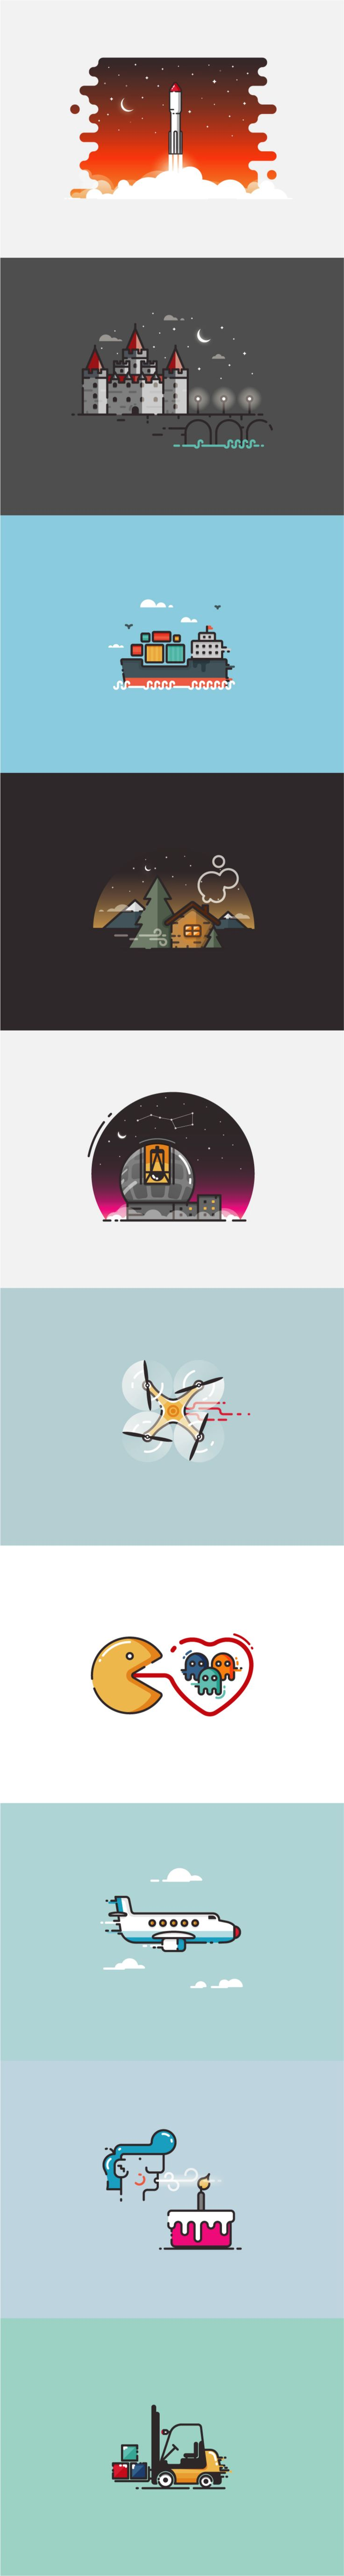 Infographic Illustrations on Behance by @newkoko2020 #outline #illustration…